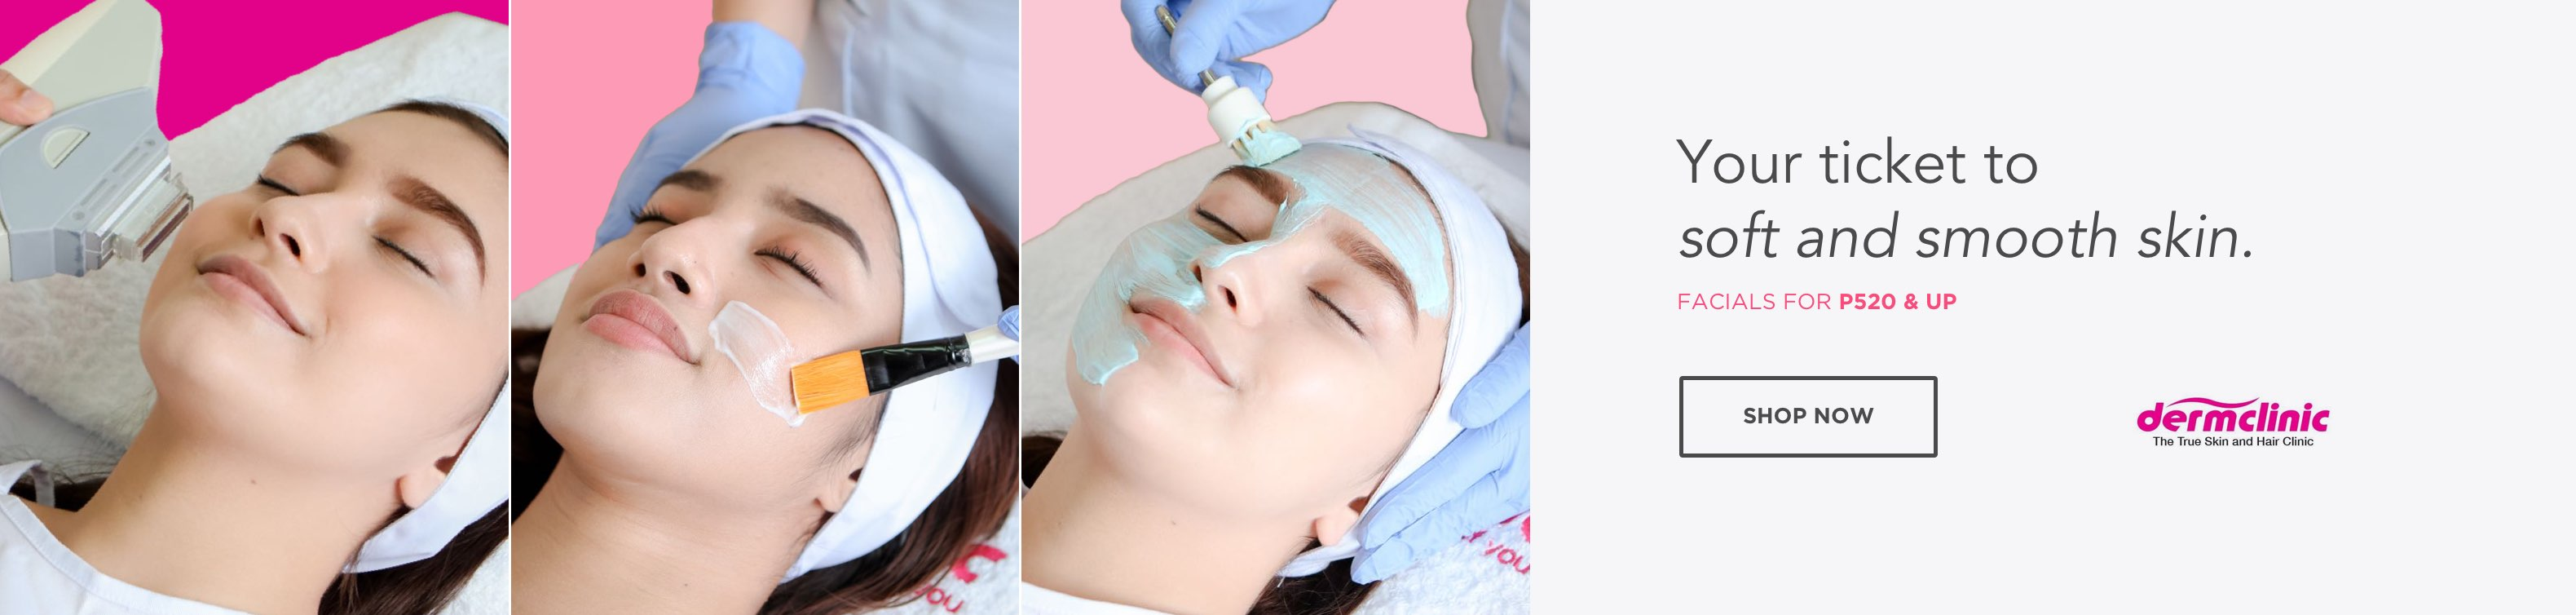 Monthly Musts: Dermclinic